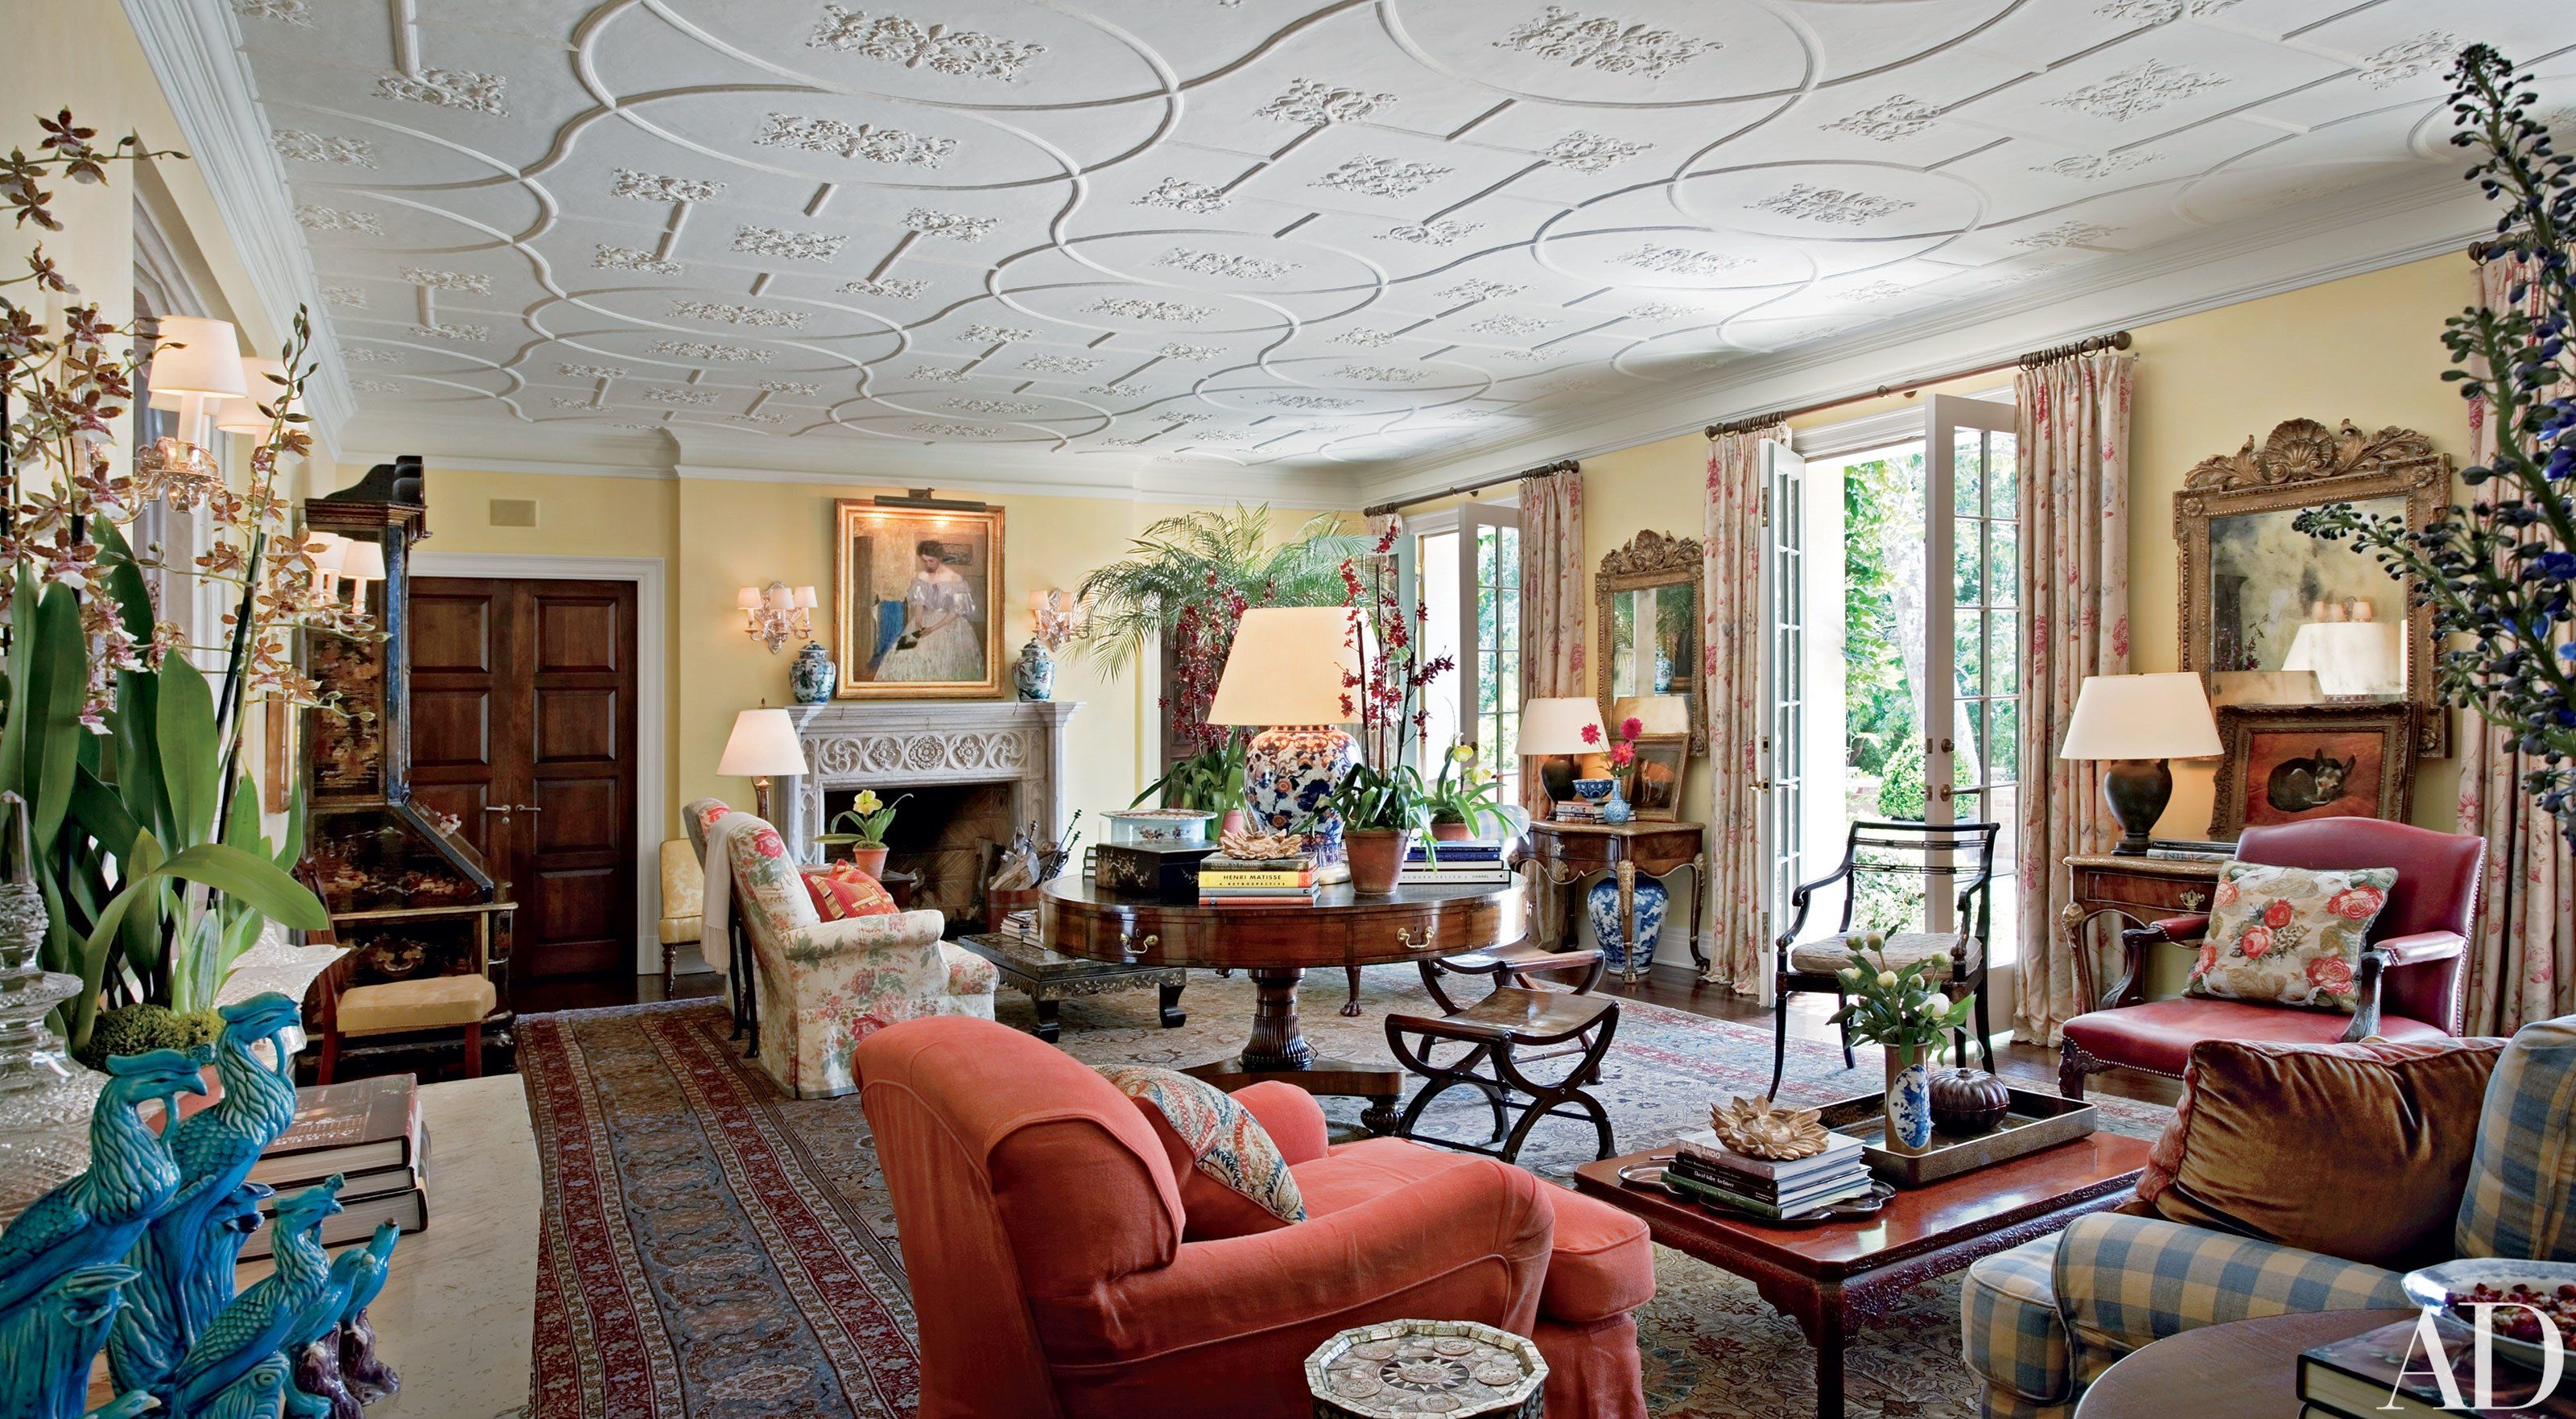 Famous interior designer Michael S Smith creates